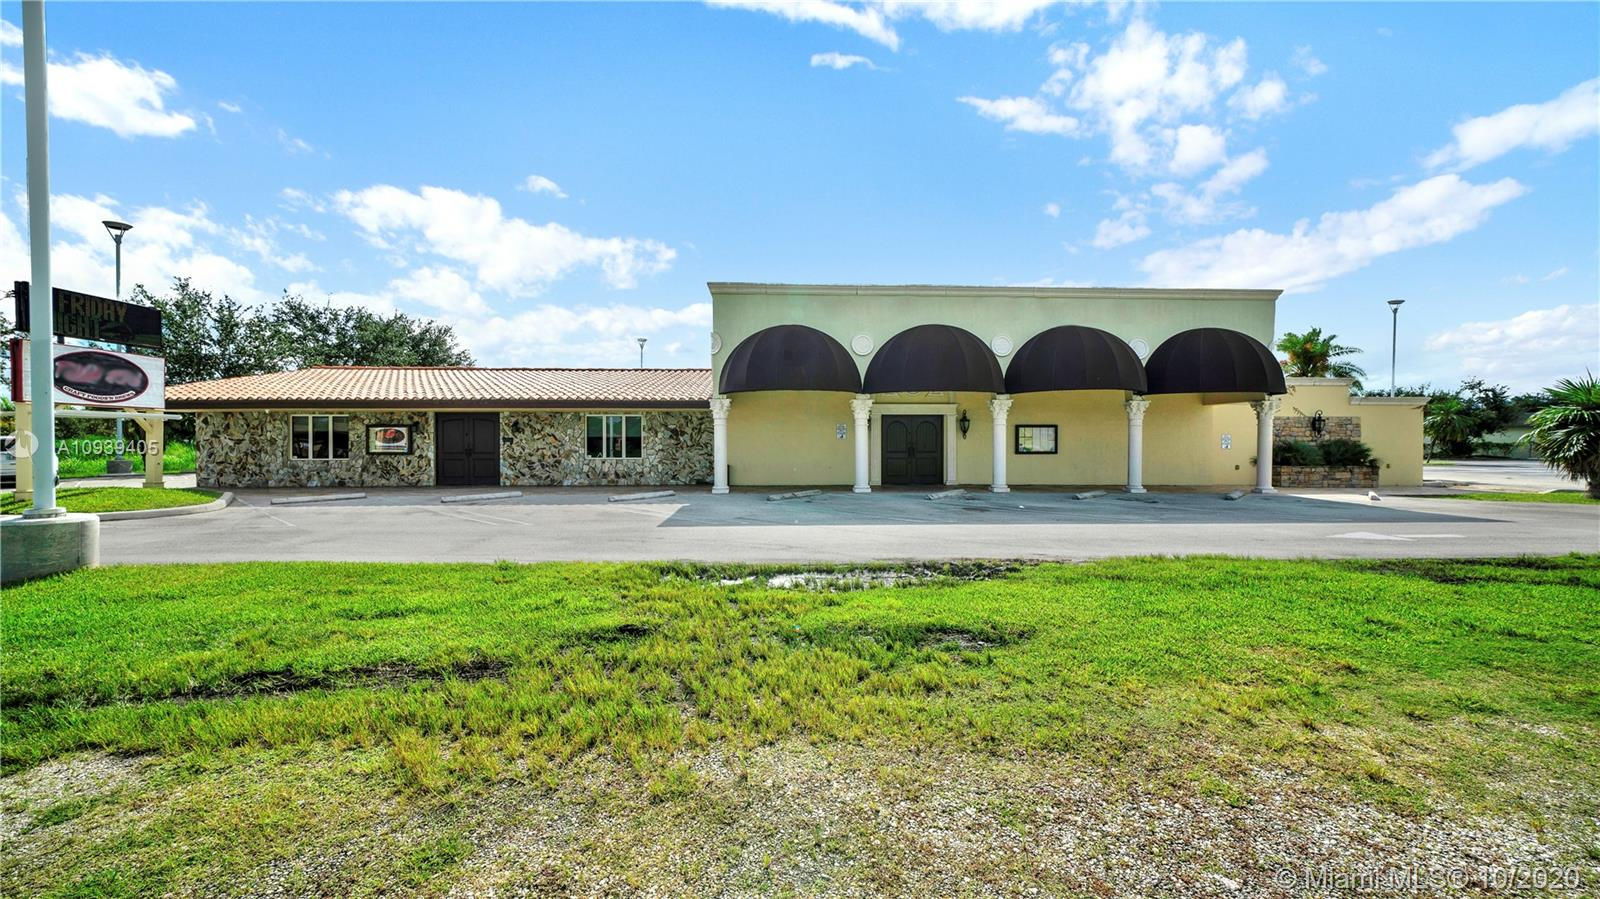 935 N Krome Ave Property Photo - Florida City, FL real estate listing